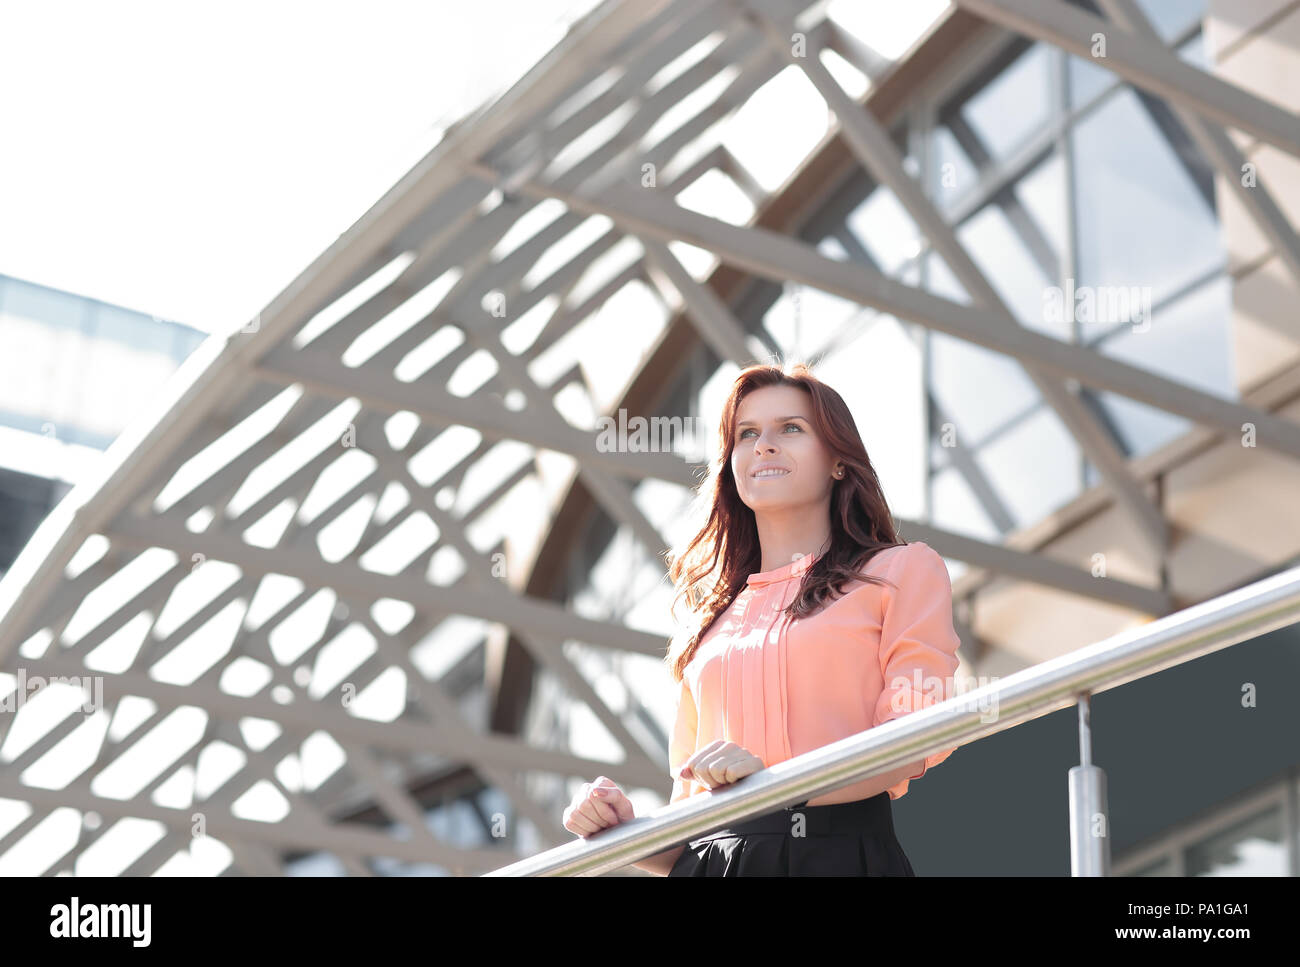 modern business woman standing on the balcony of a modern office building - Stock Image